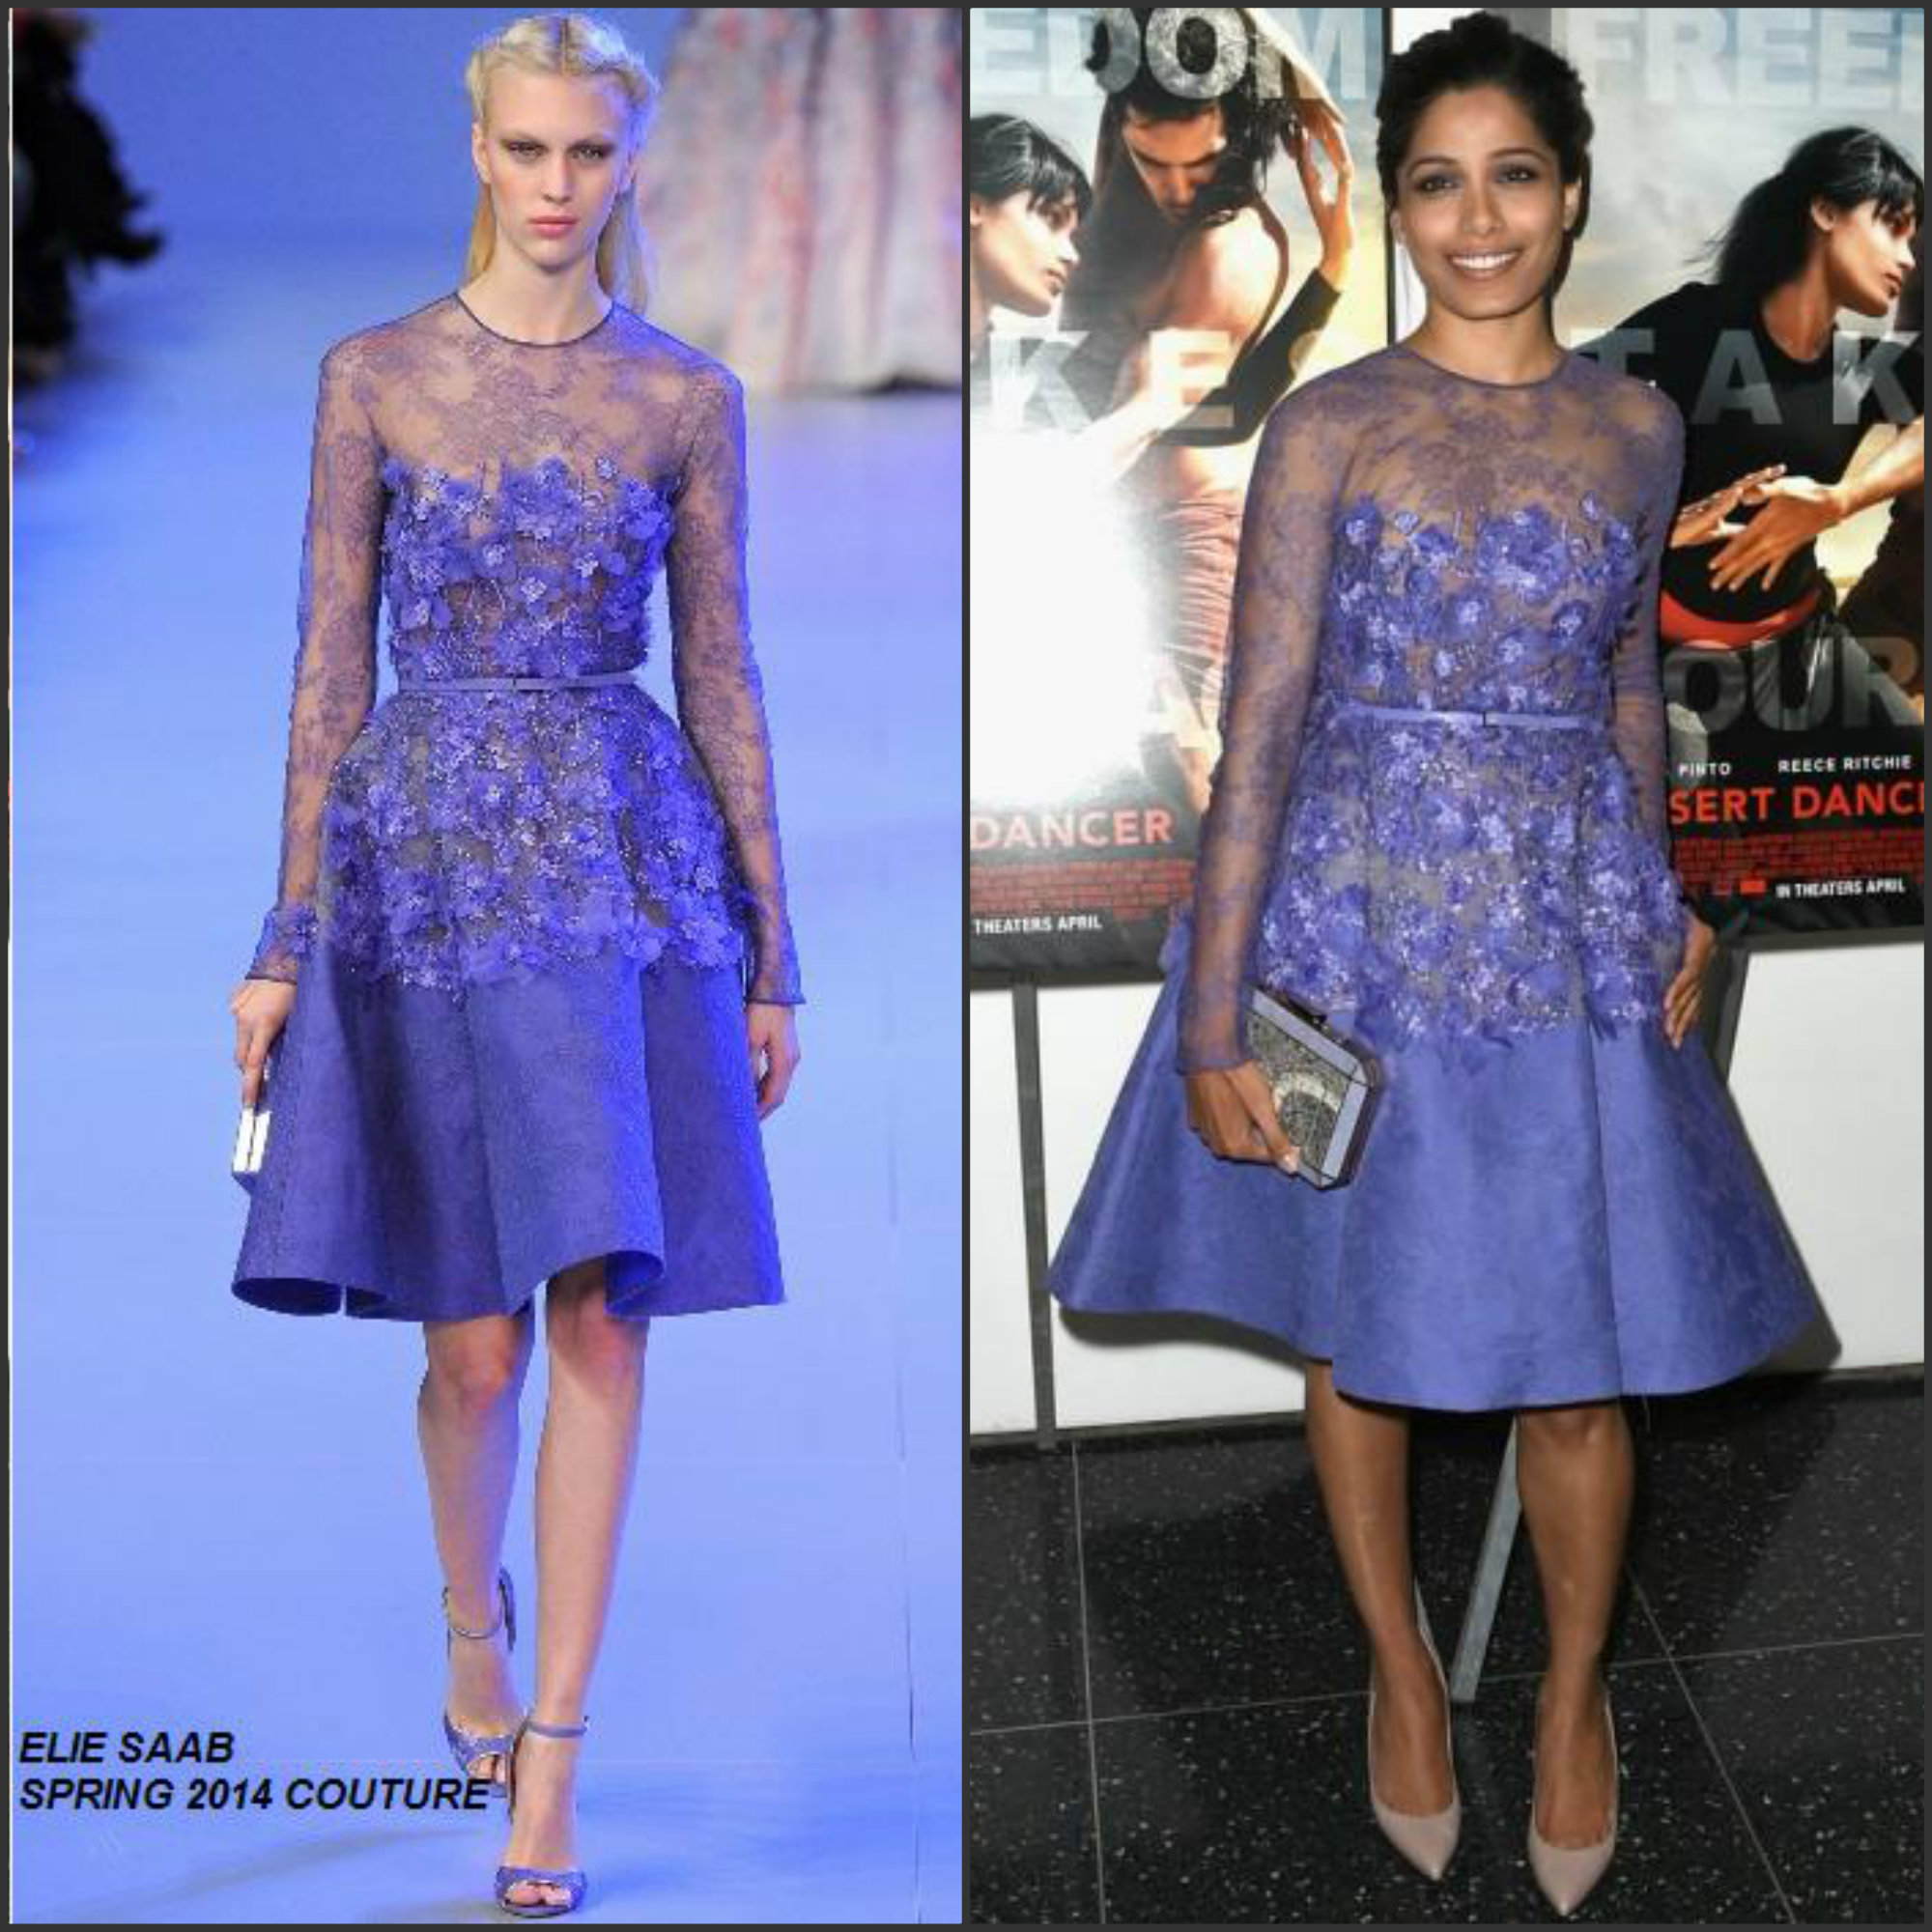 Freida-Pinto-in-Elie-Saab-Couture-at-the-Desert-Dancer-NYC-Screening